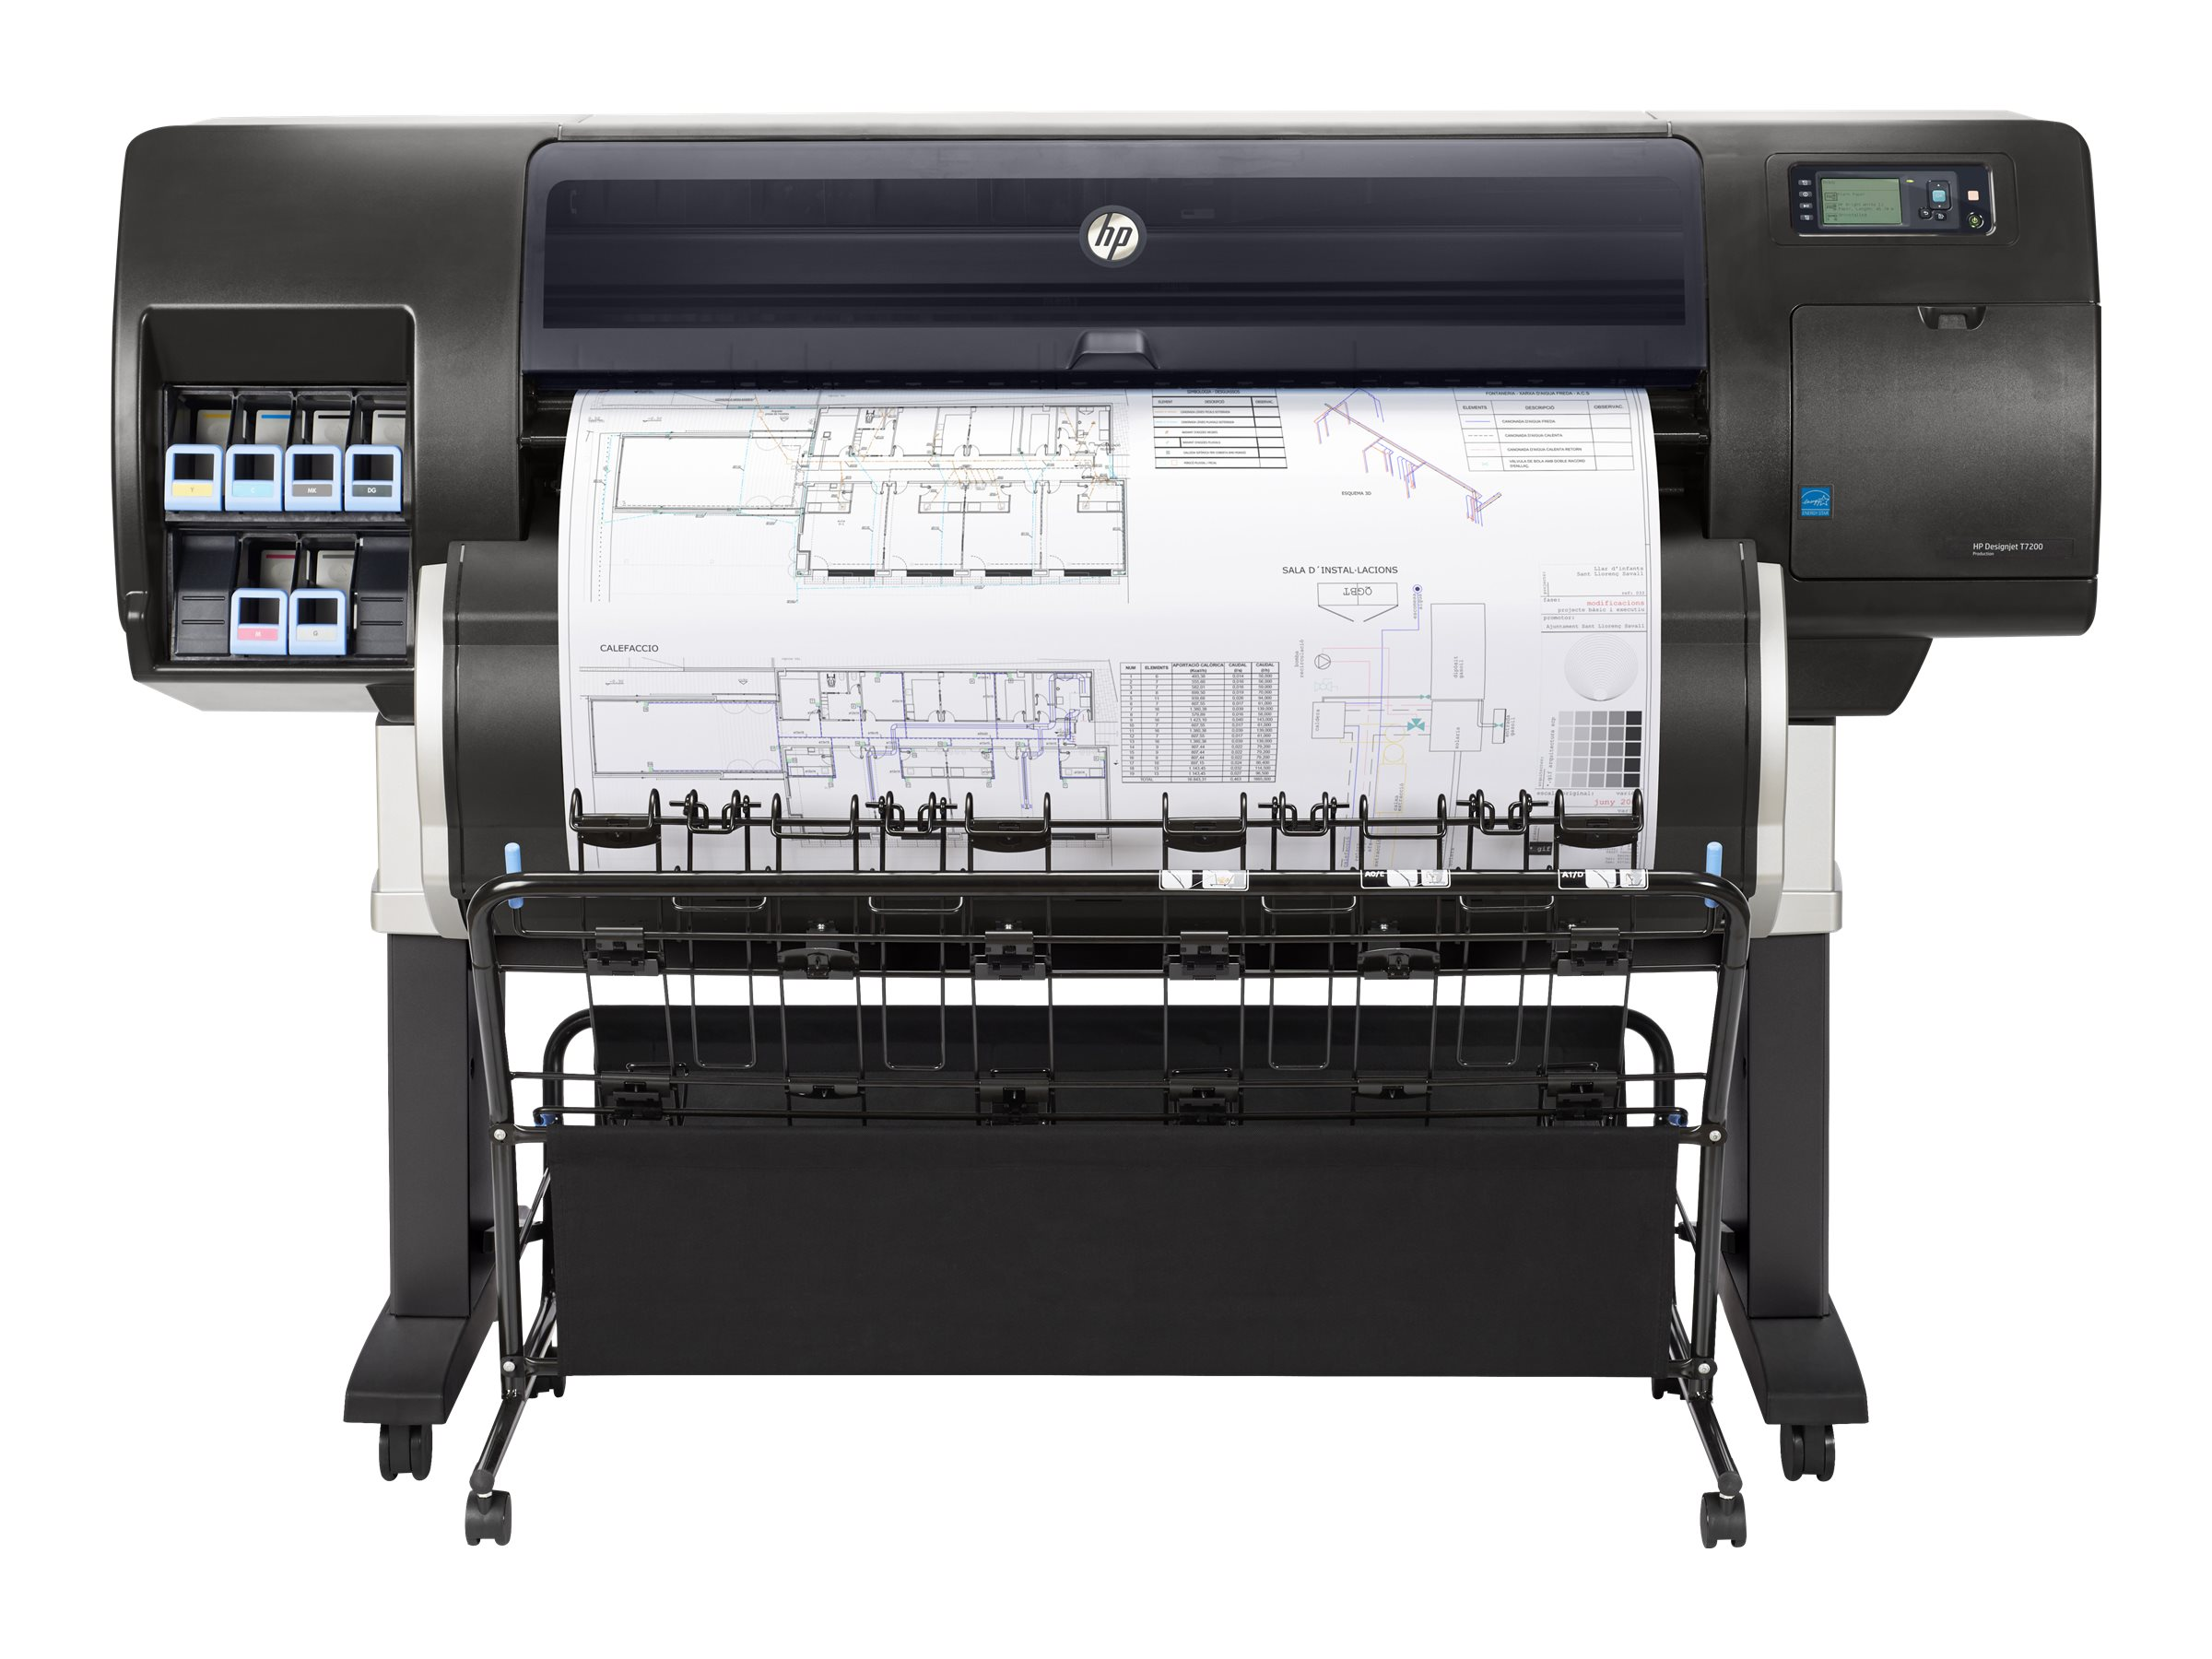 HP Designjet T7200 High Definition Production Printer, F2L46B#BCB